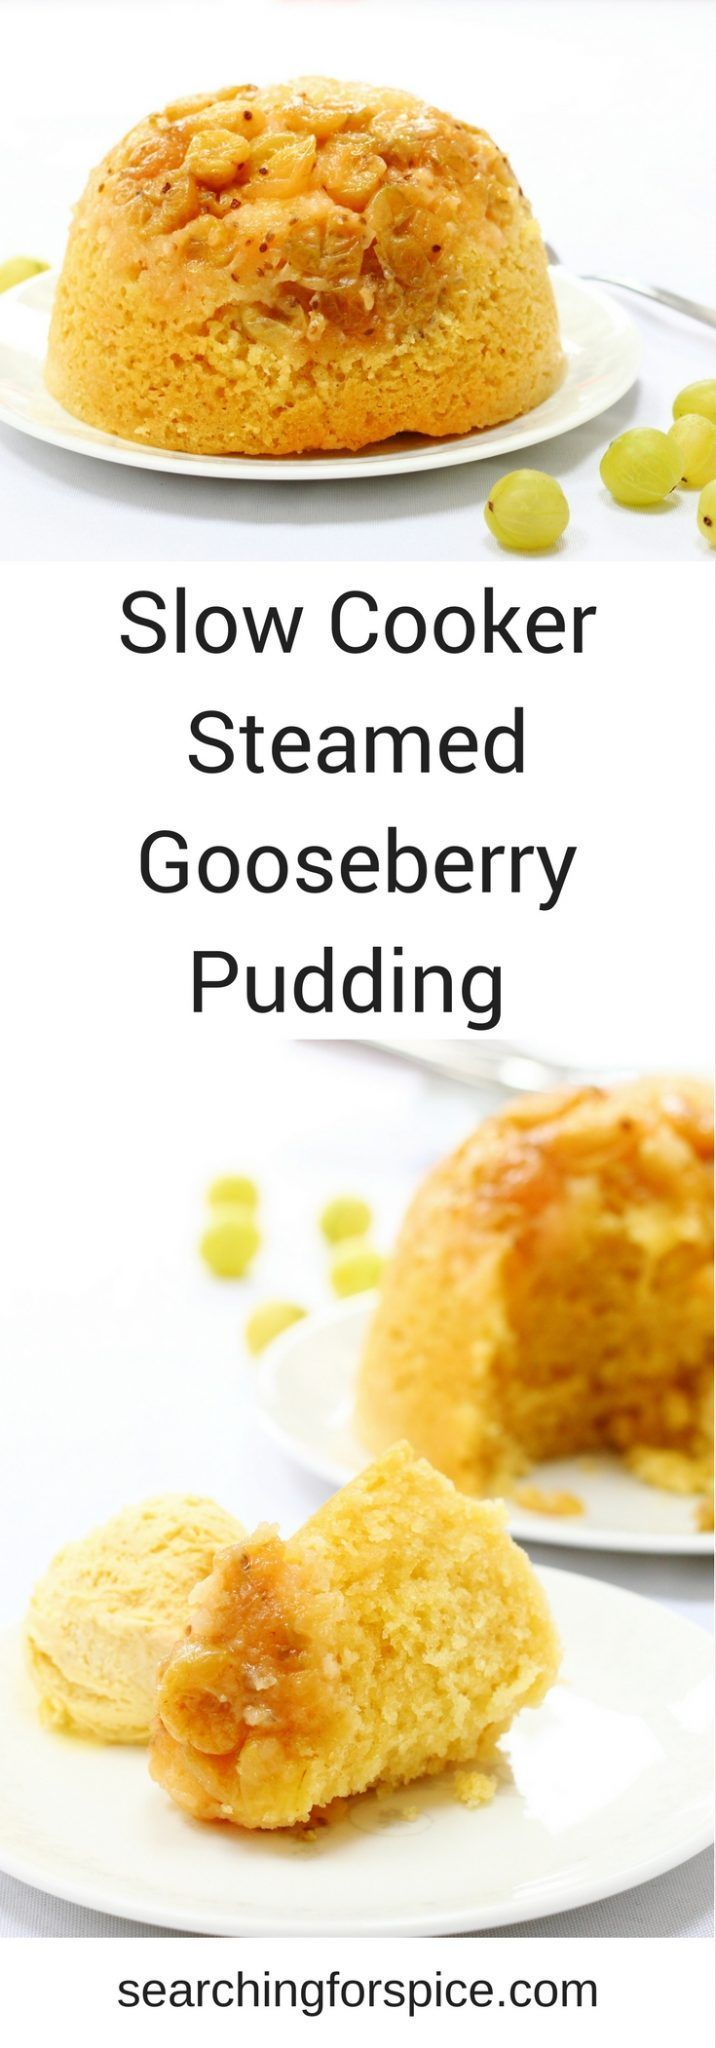 Comforting recipe for a slow cooker steamed gooseberry pudding. Perfect to make in summer with seasonal fruit as the slow cooker won't heat up your kitchen. If you can't find gooseberries, just replace with other seasonal fruit such as apples, plums or ch